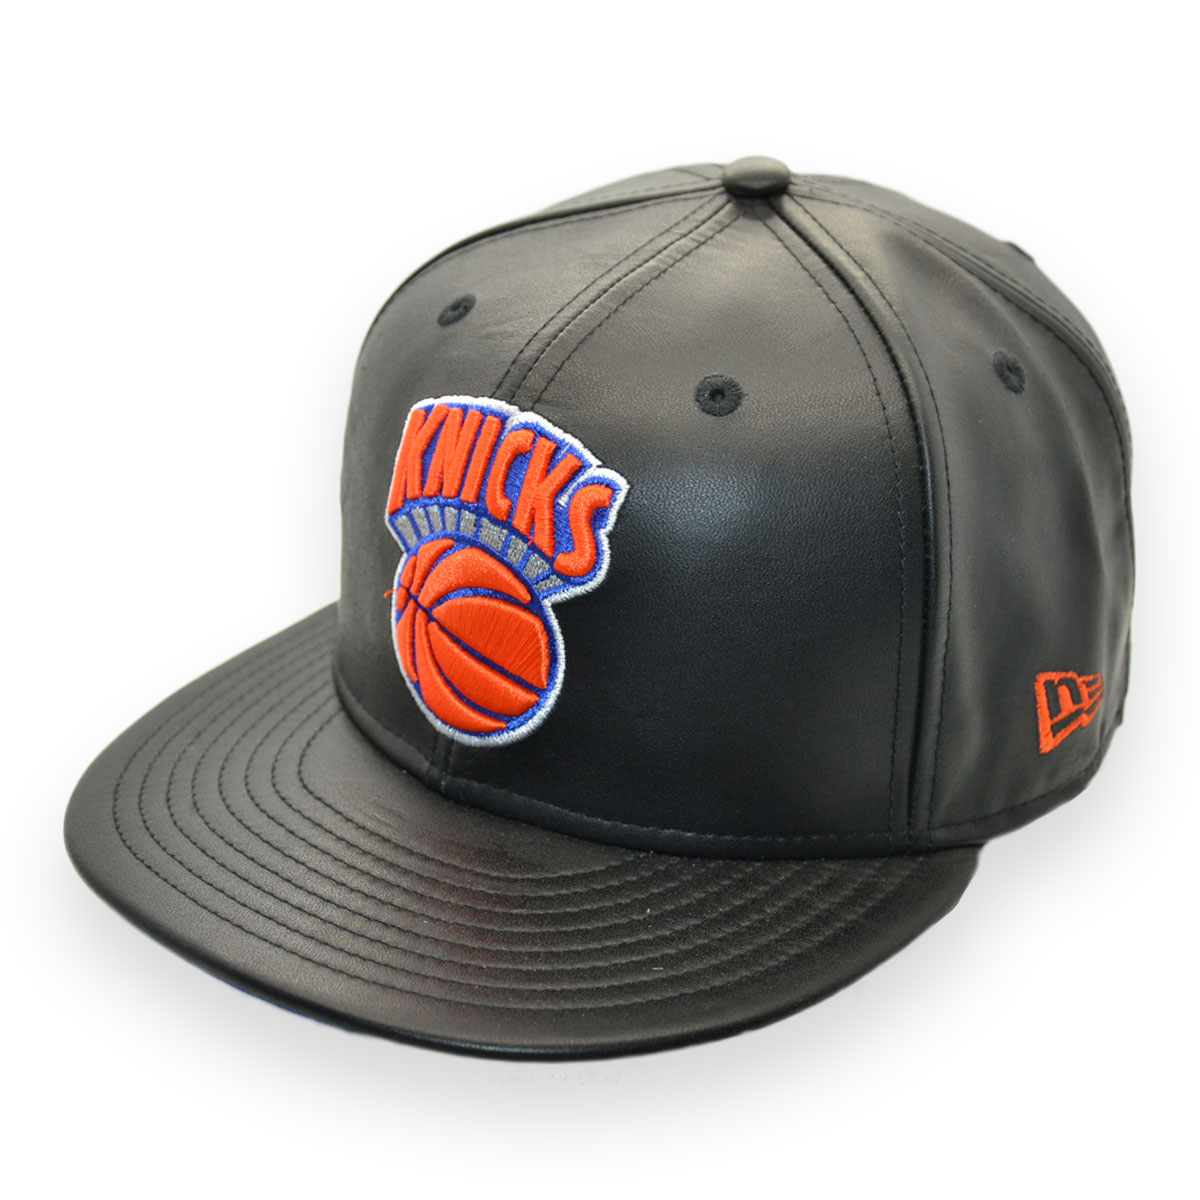 NEW ERA NEW YORK KNICKS NBA BASKETBALL 59FIFTY LEATHER SAMPLE CAP ... dffc2005fcd